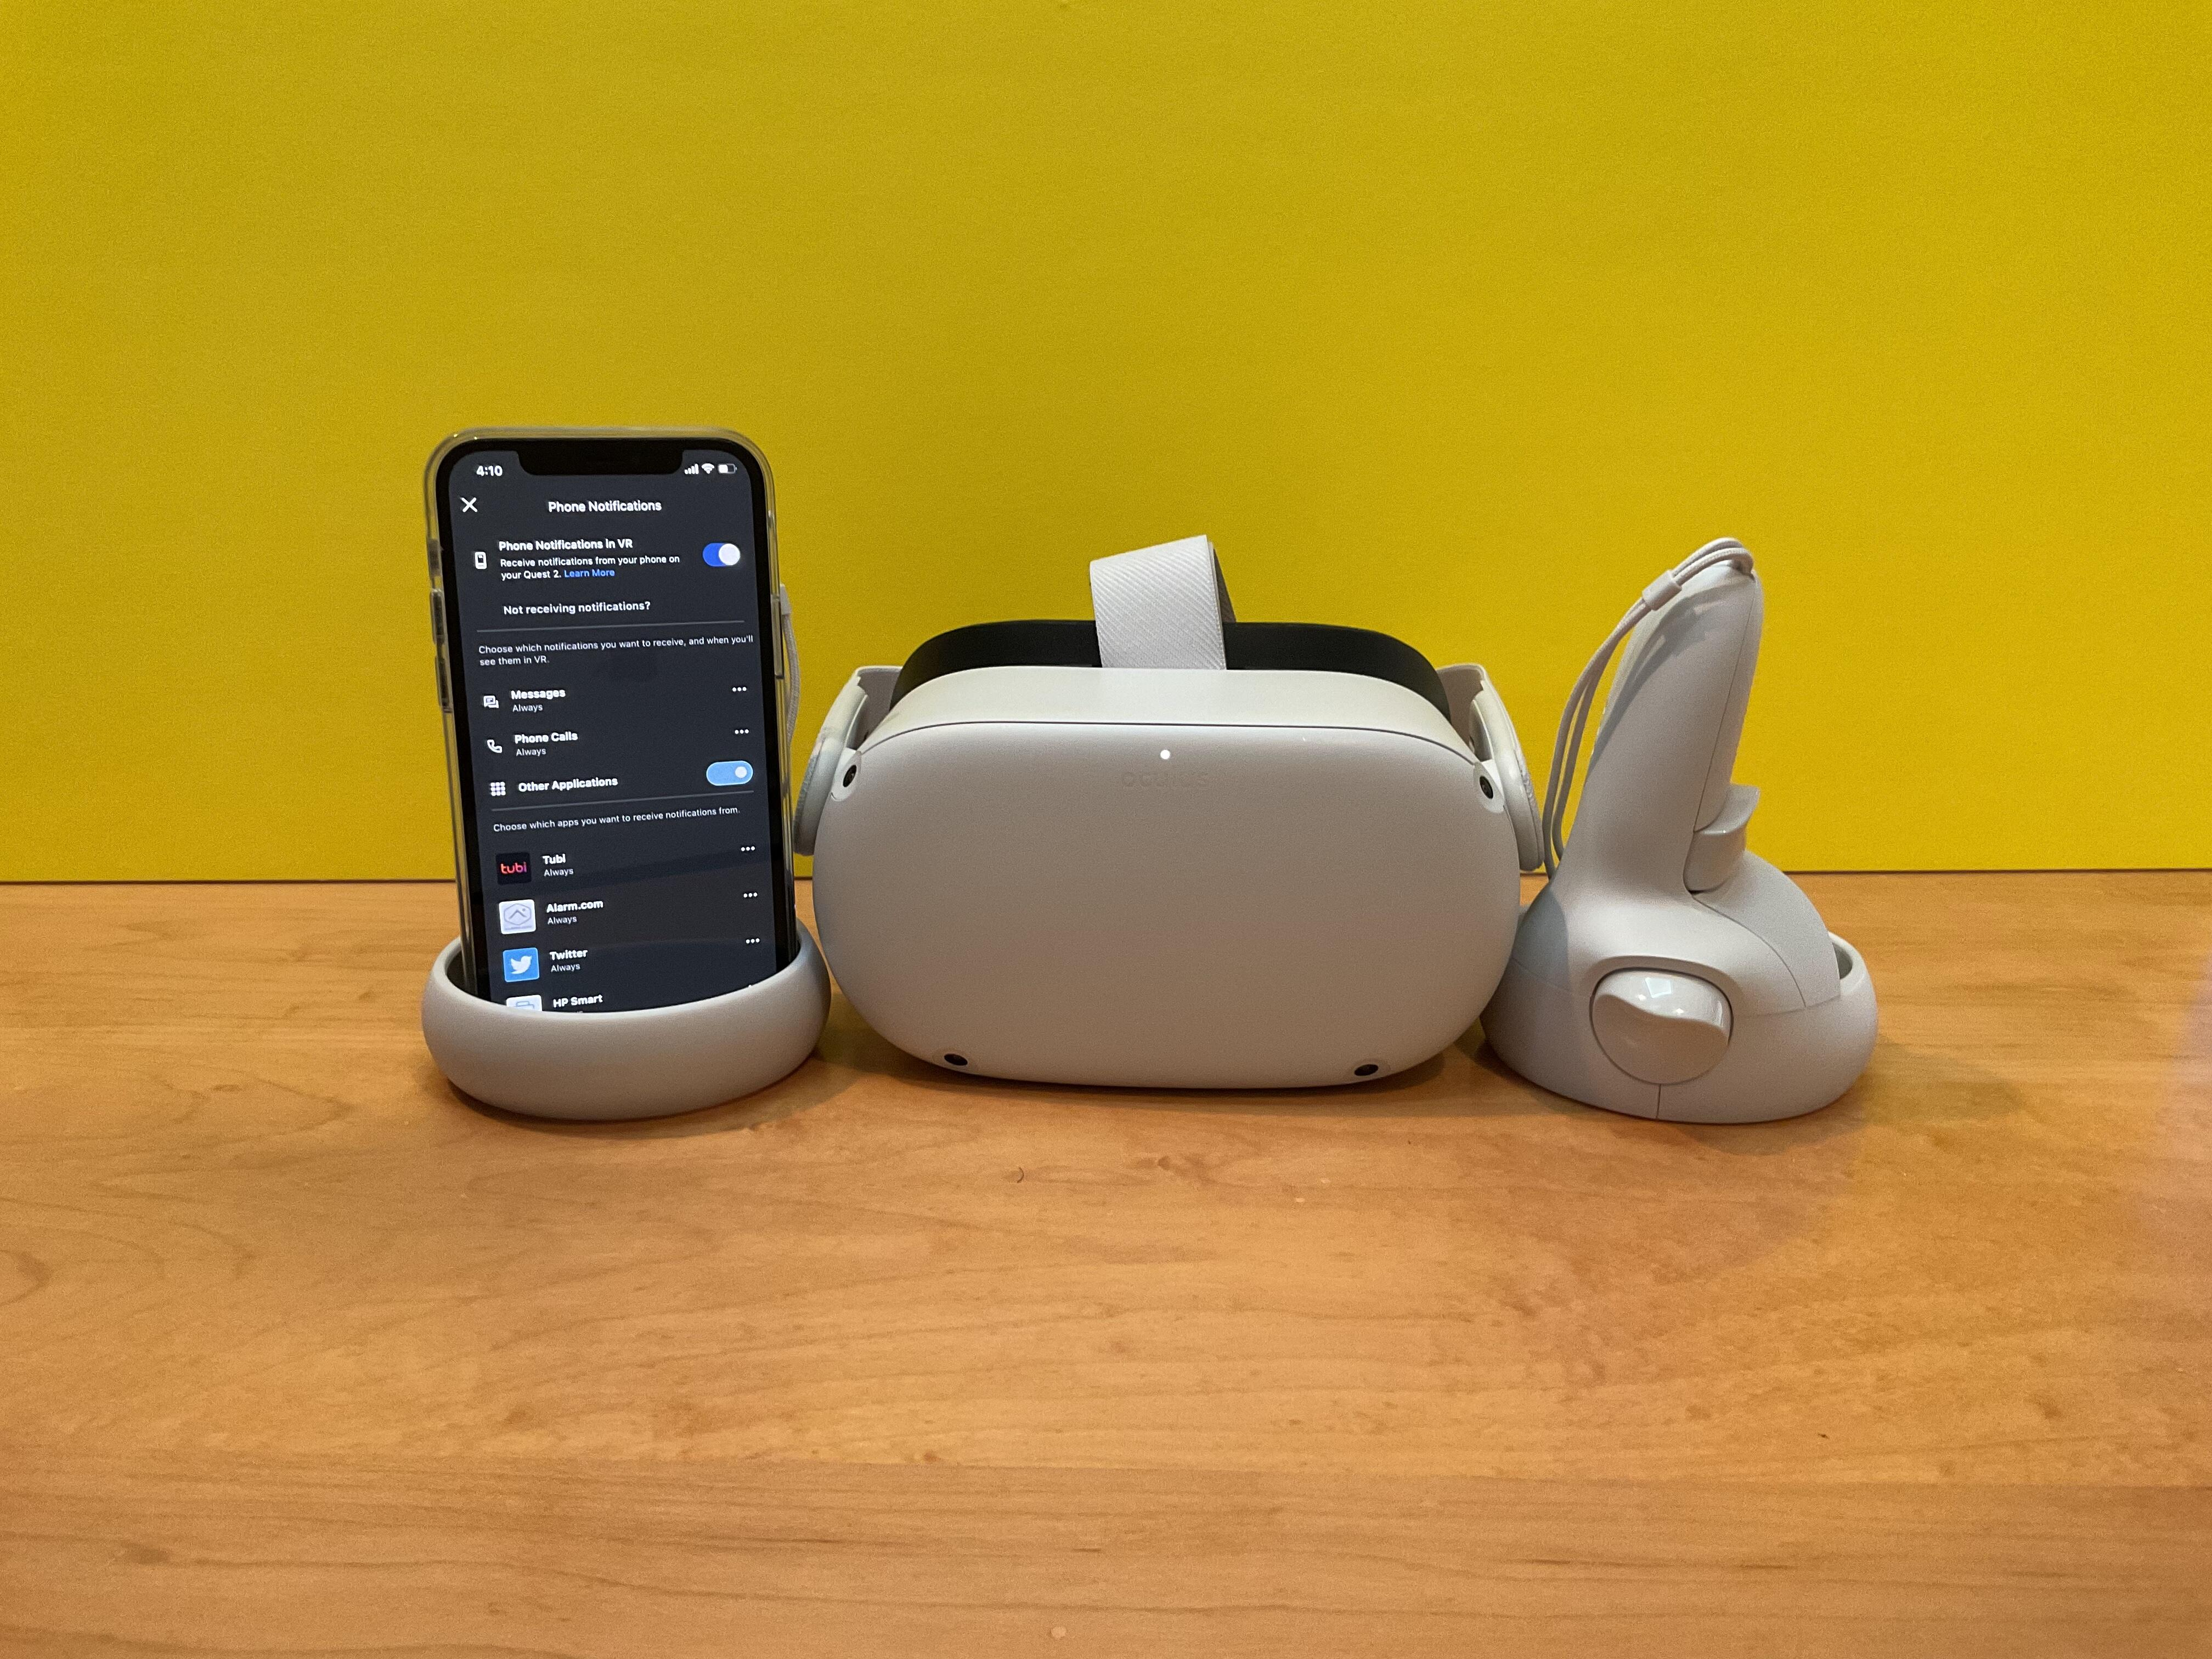 <p>The Oculus Quest 2 gets iPhone notifications, and it's great when gaming (usually).</p>